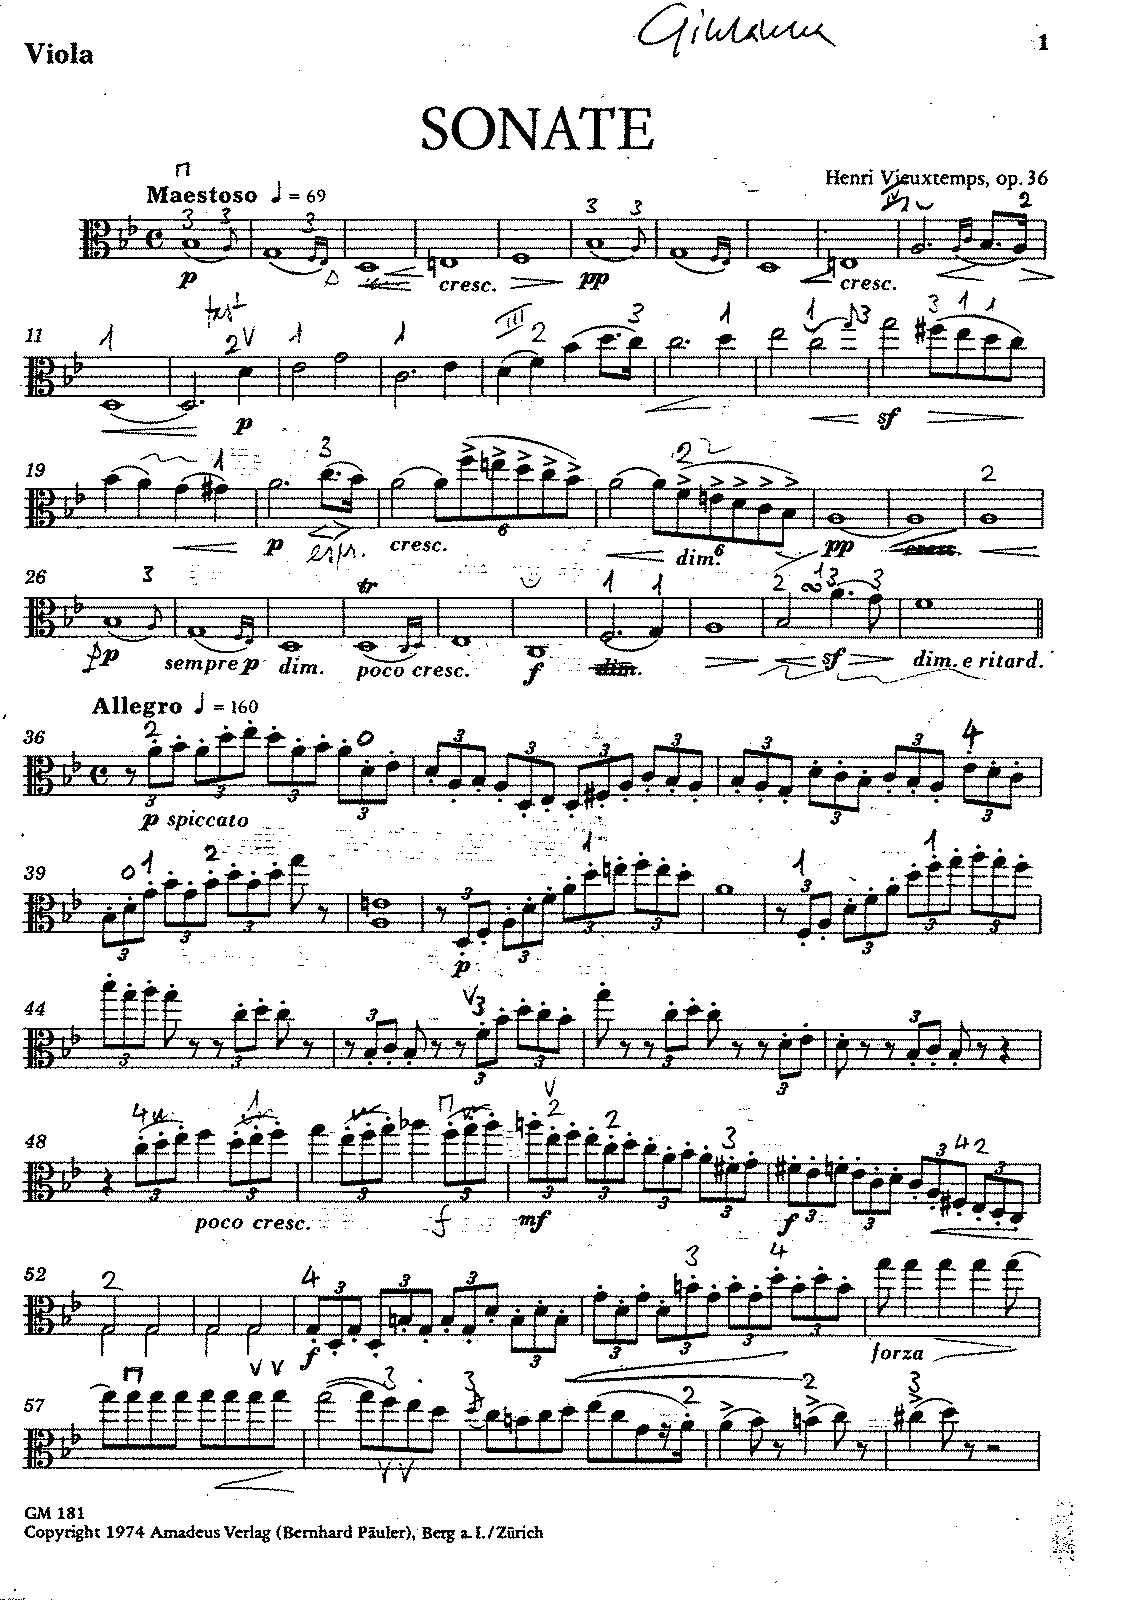 Vieuxtemps op36 Sonata for Viola.pdf